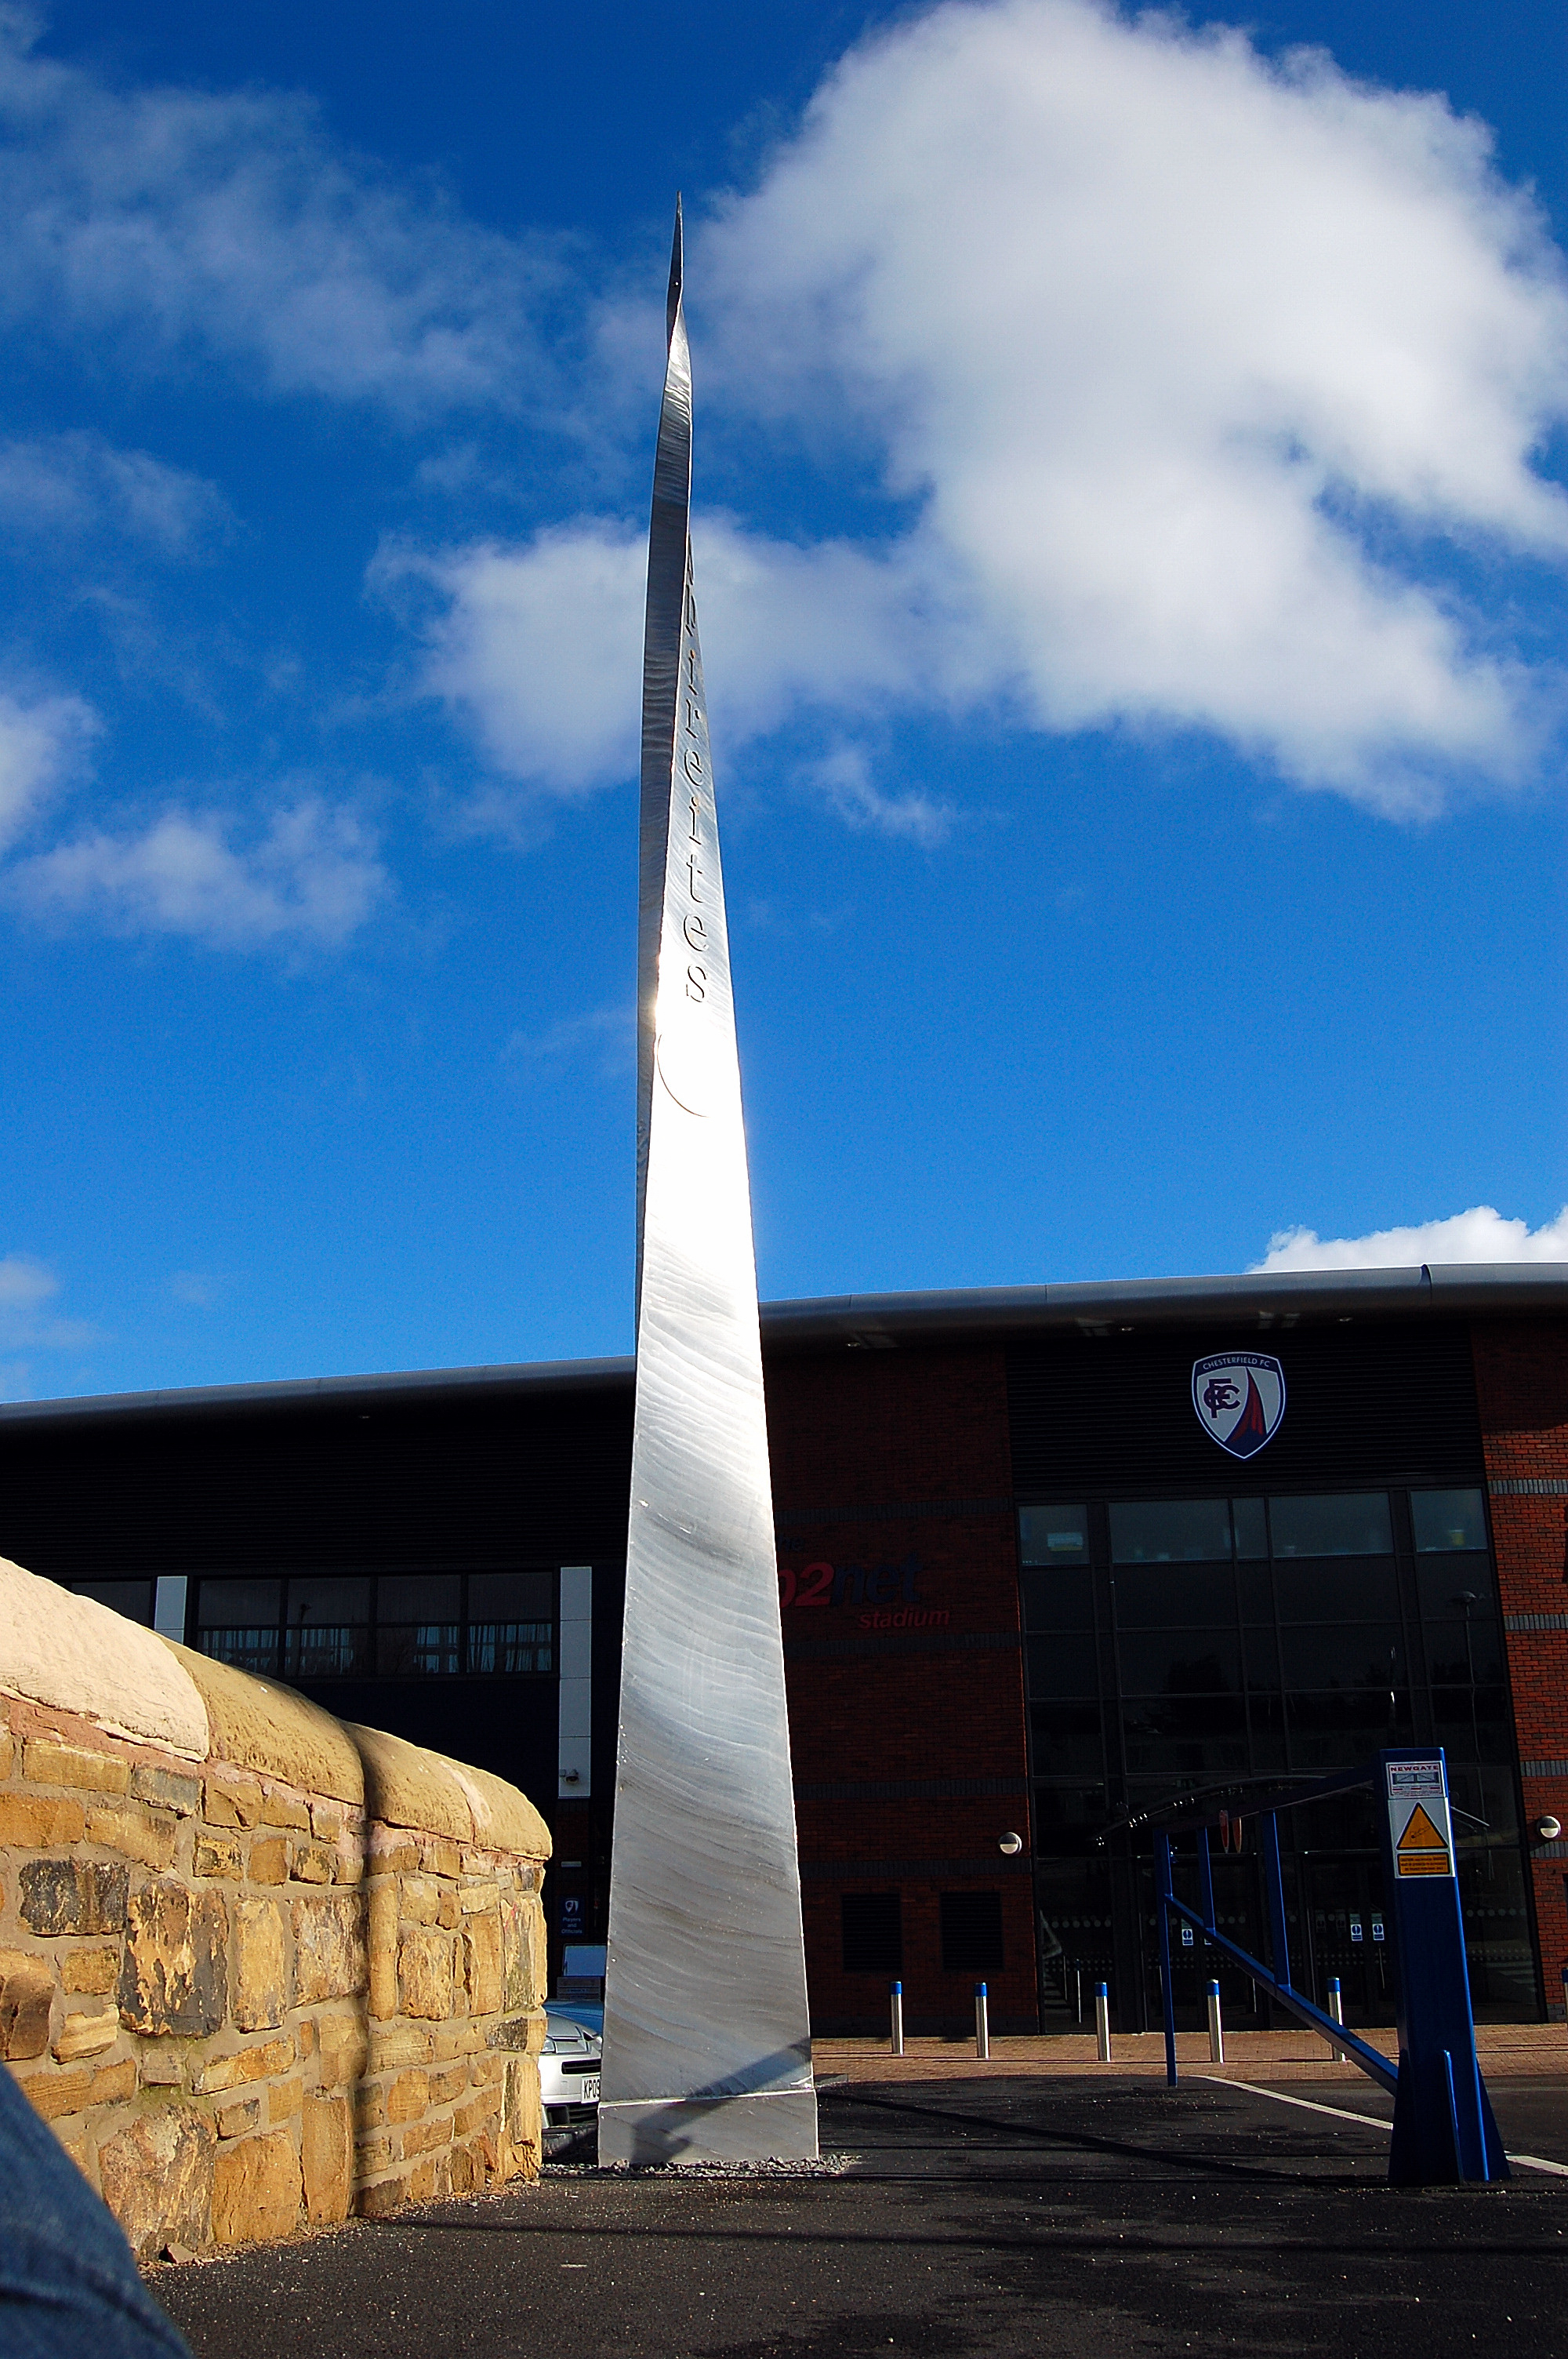 Spires - Chesterfield Football Club (8)